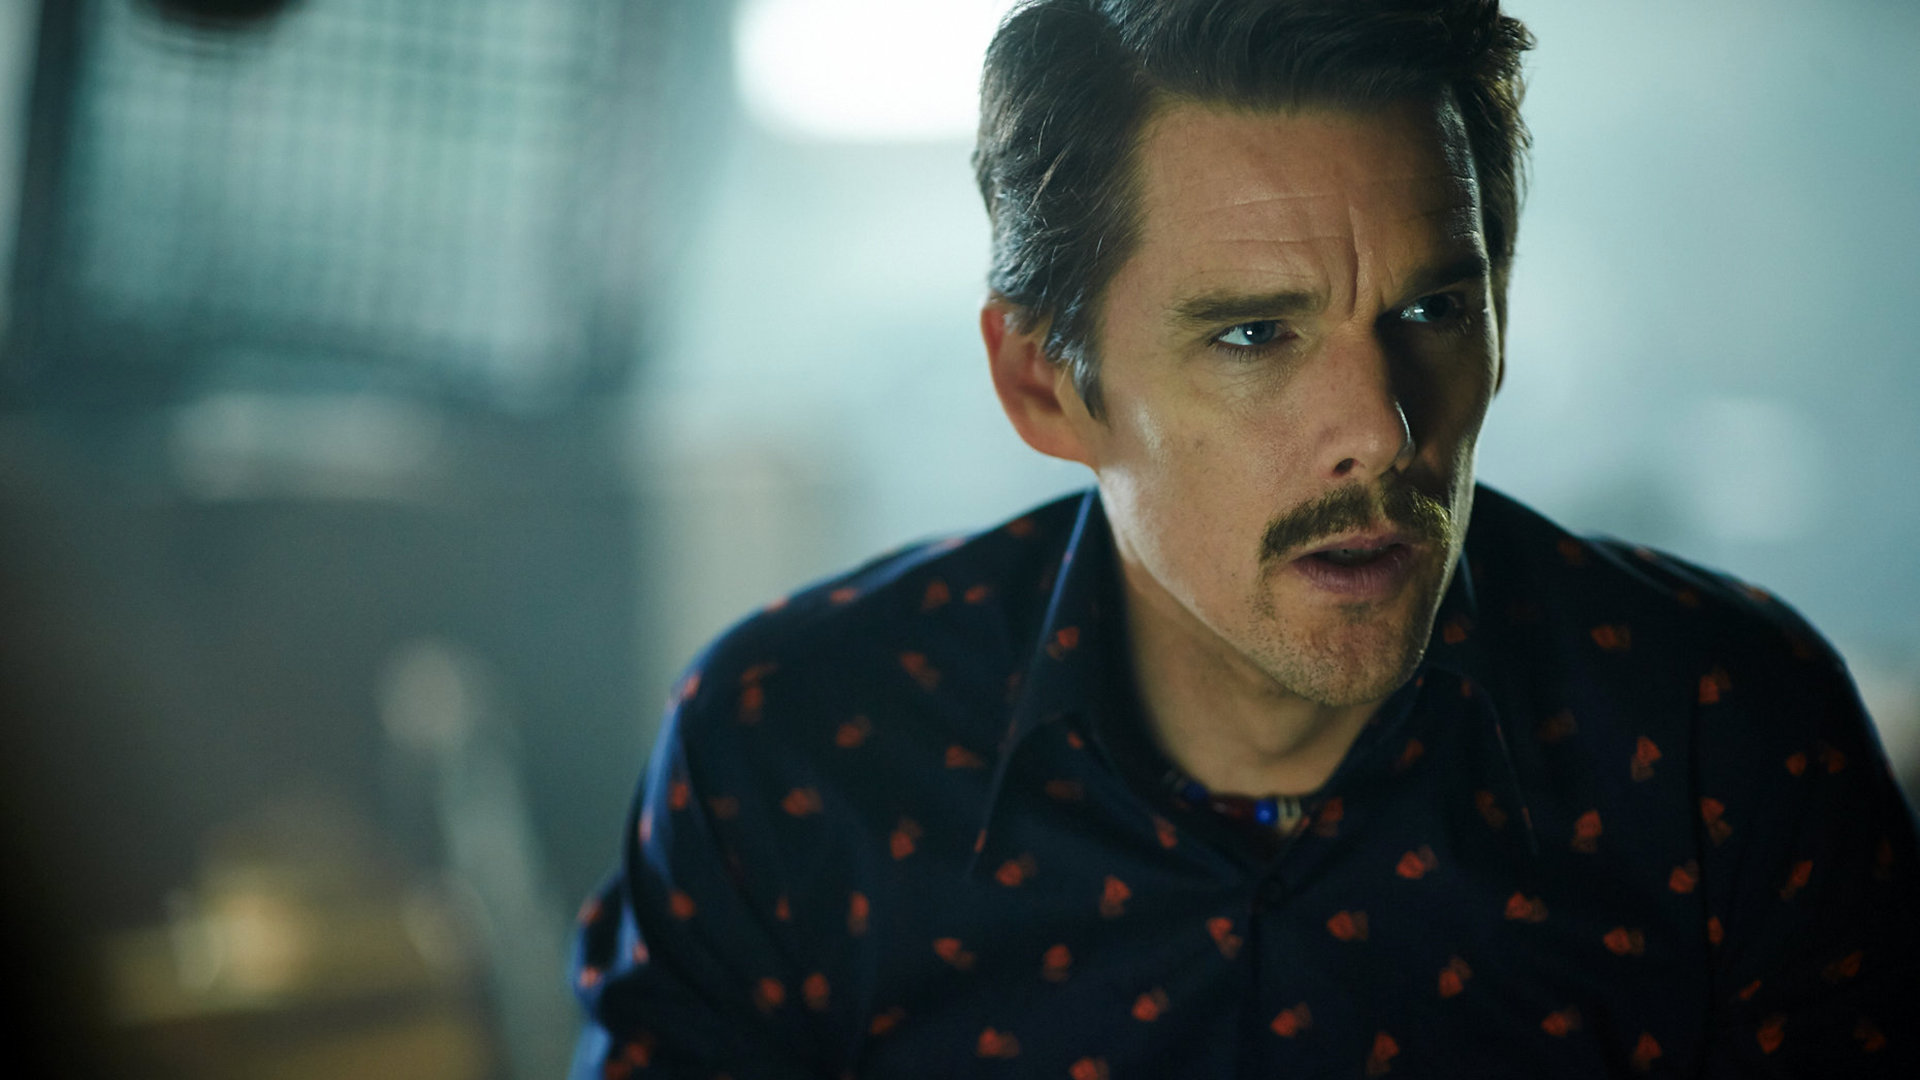 Download 1080p Ethan Hawke desktop wallpaper ID:115342 for free